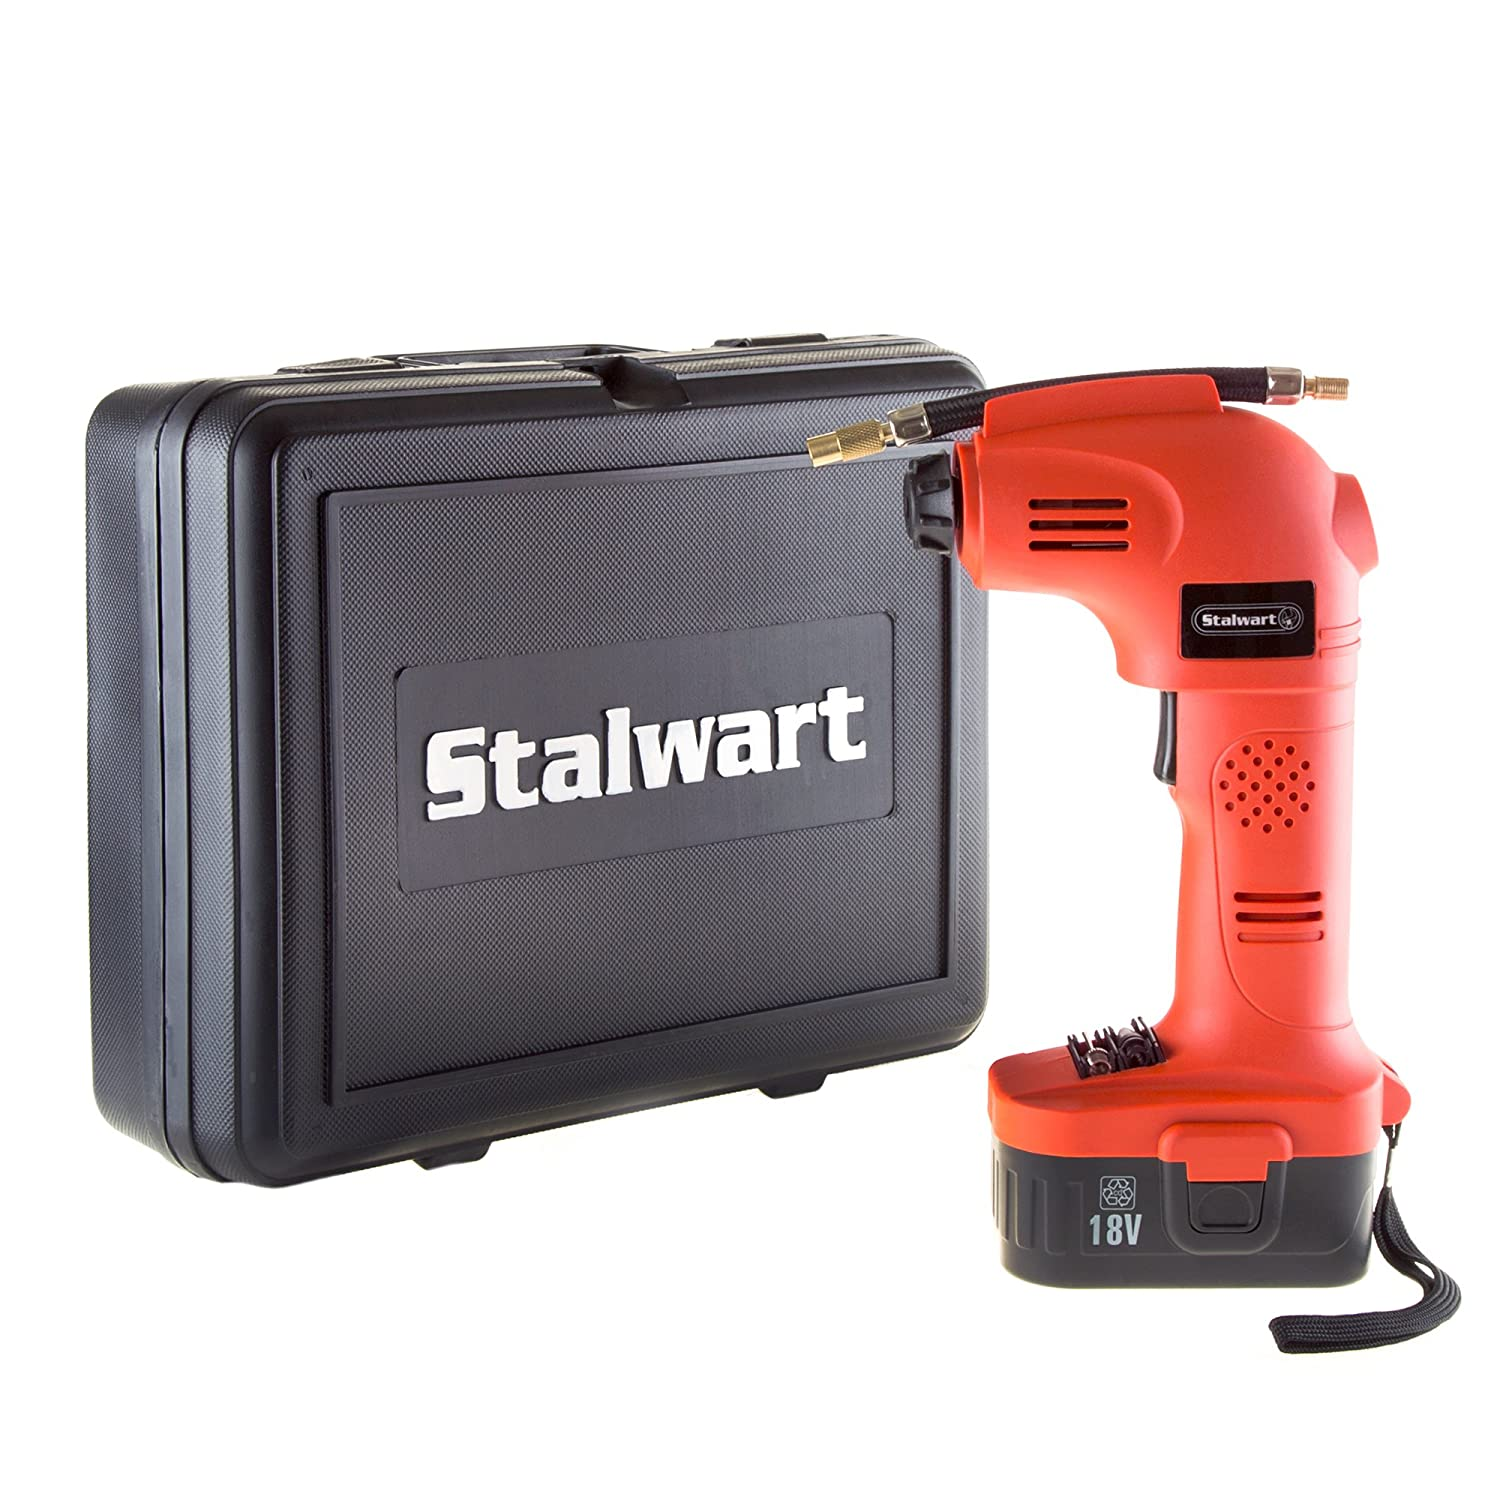 Cordless Air Compressor Portable Tire Inflator Rechargeable Handheld Emergency PSI/BAR Pump With Needles and Hose for Car Truck RV by Stalwart (18V) Trademark Global 75-PT1001